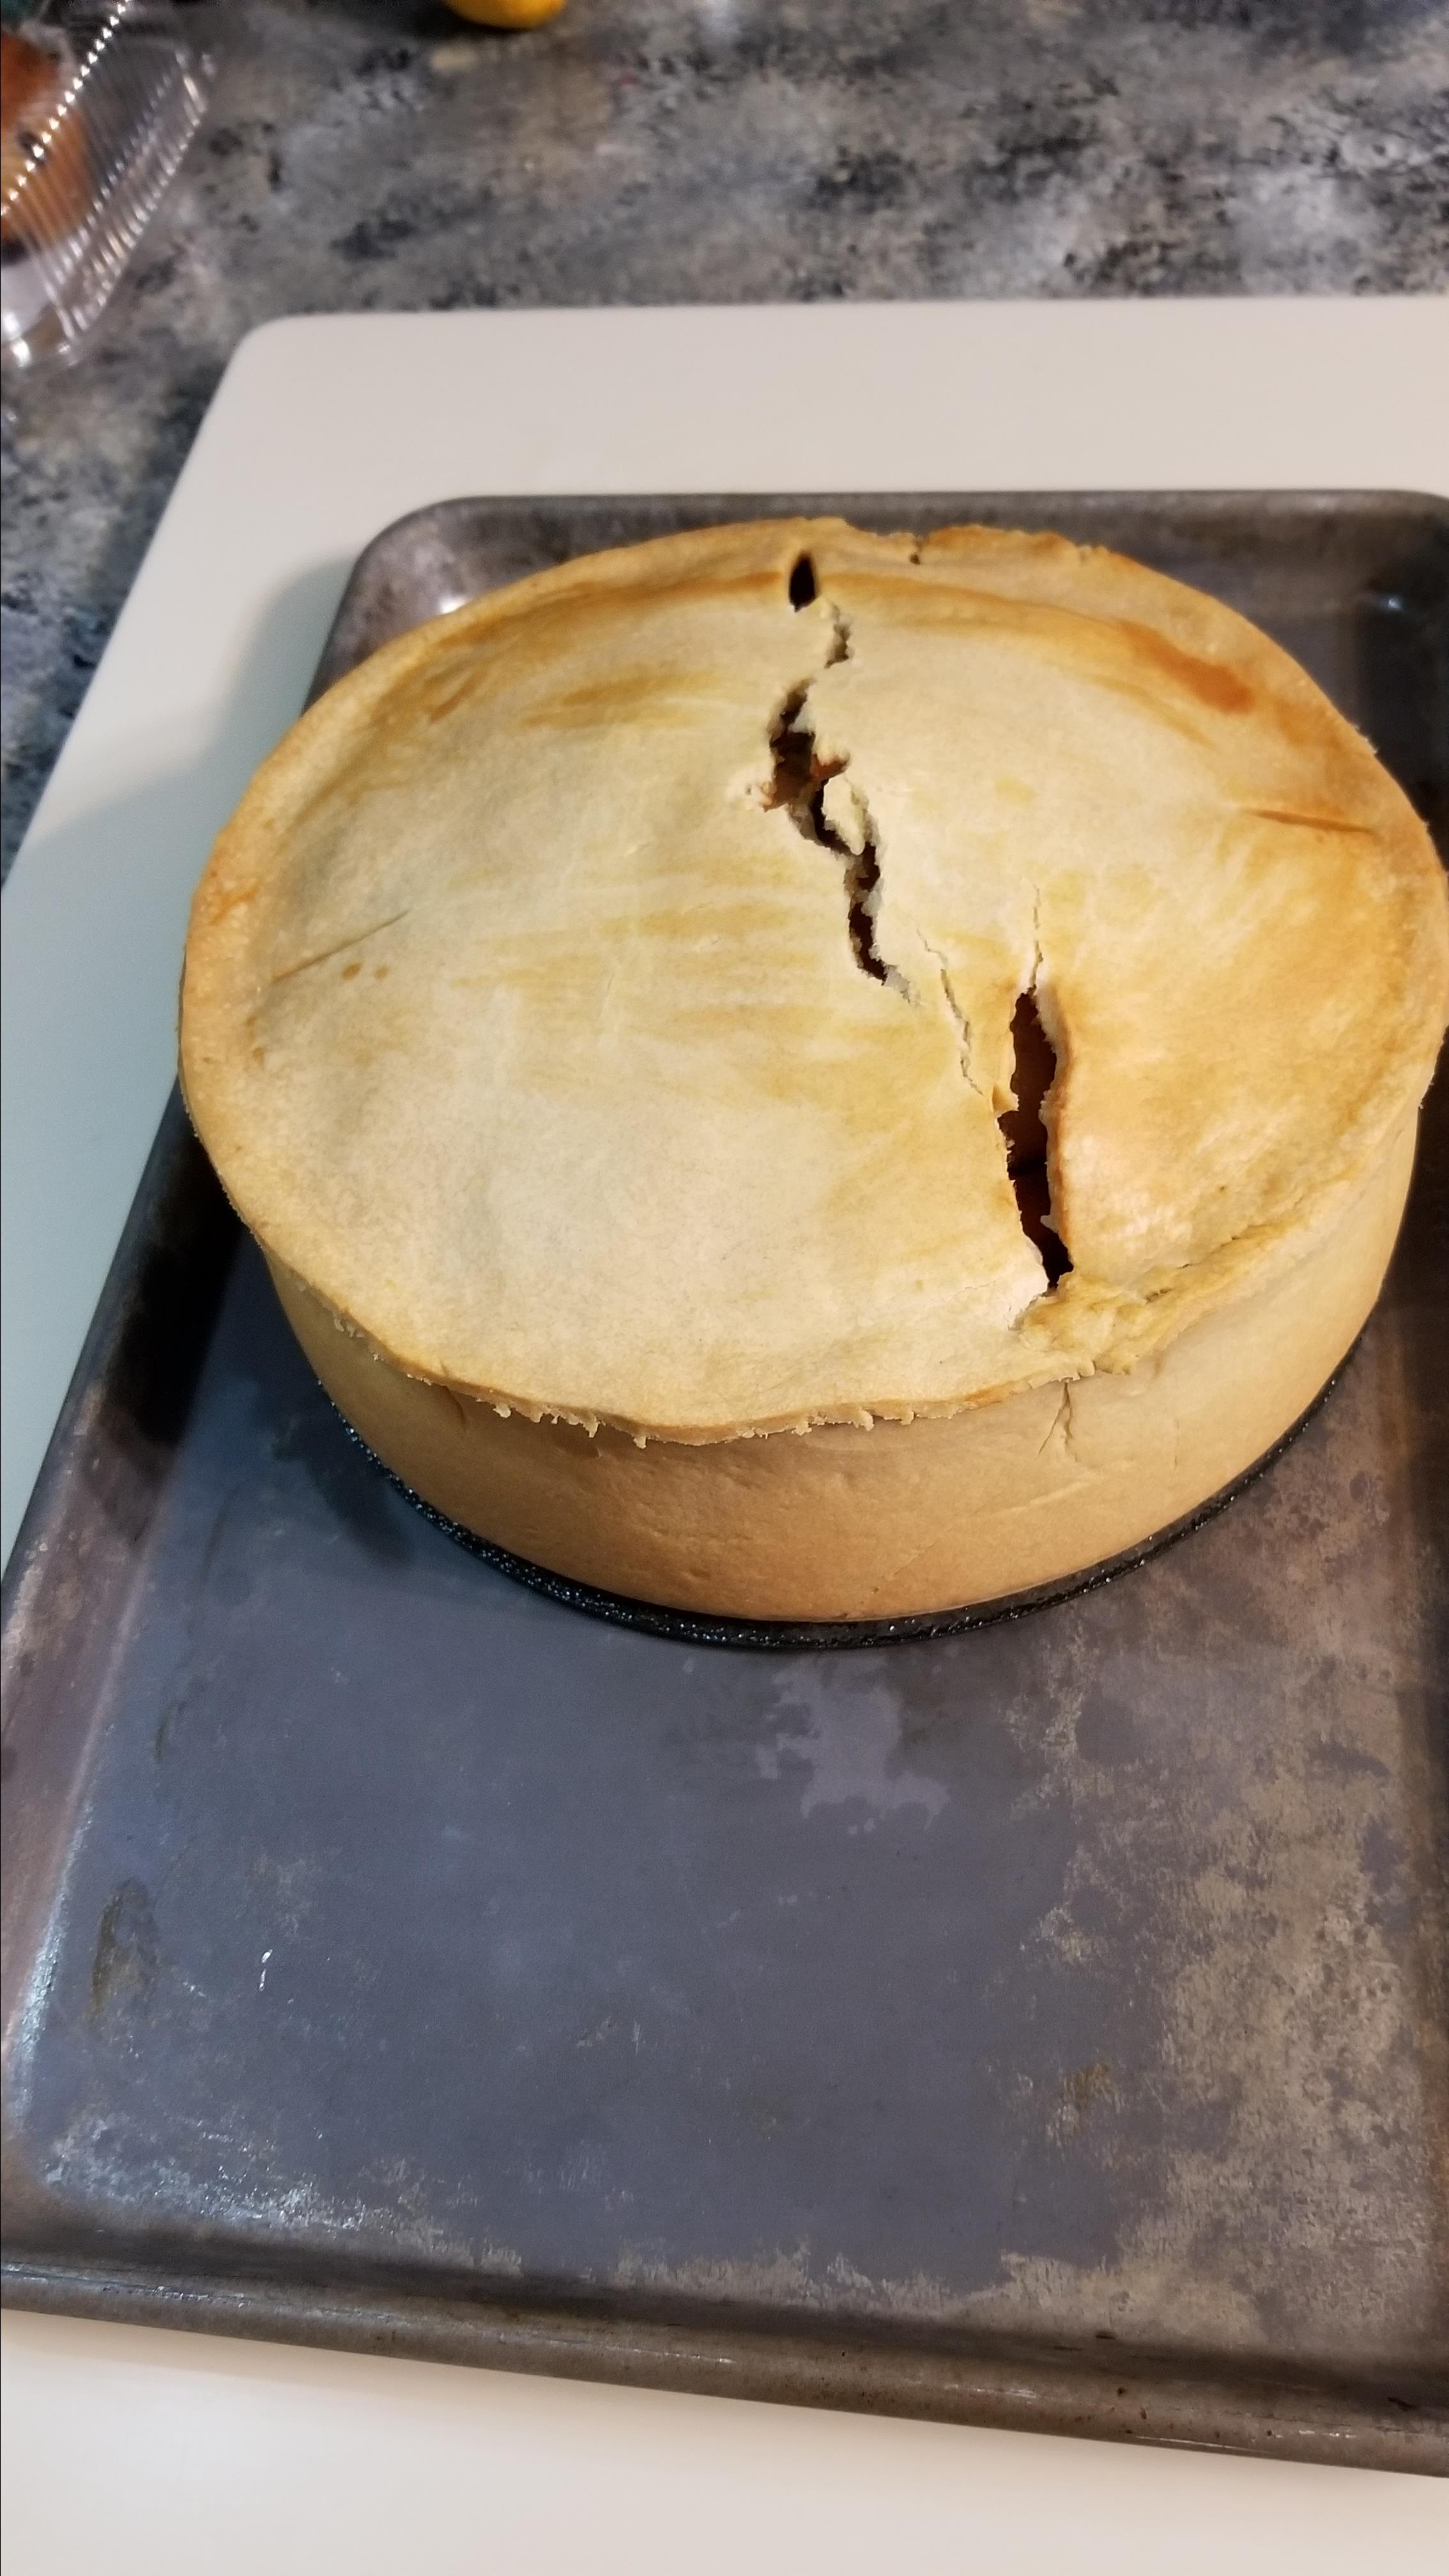 Meat Pie with Hot Water Crust Amy Nyren